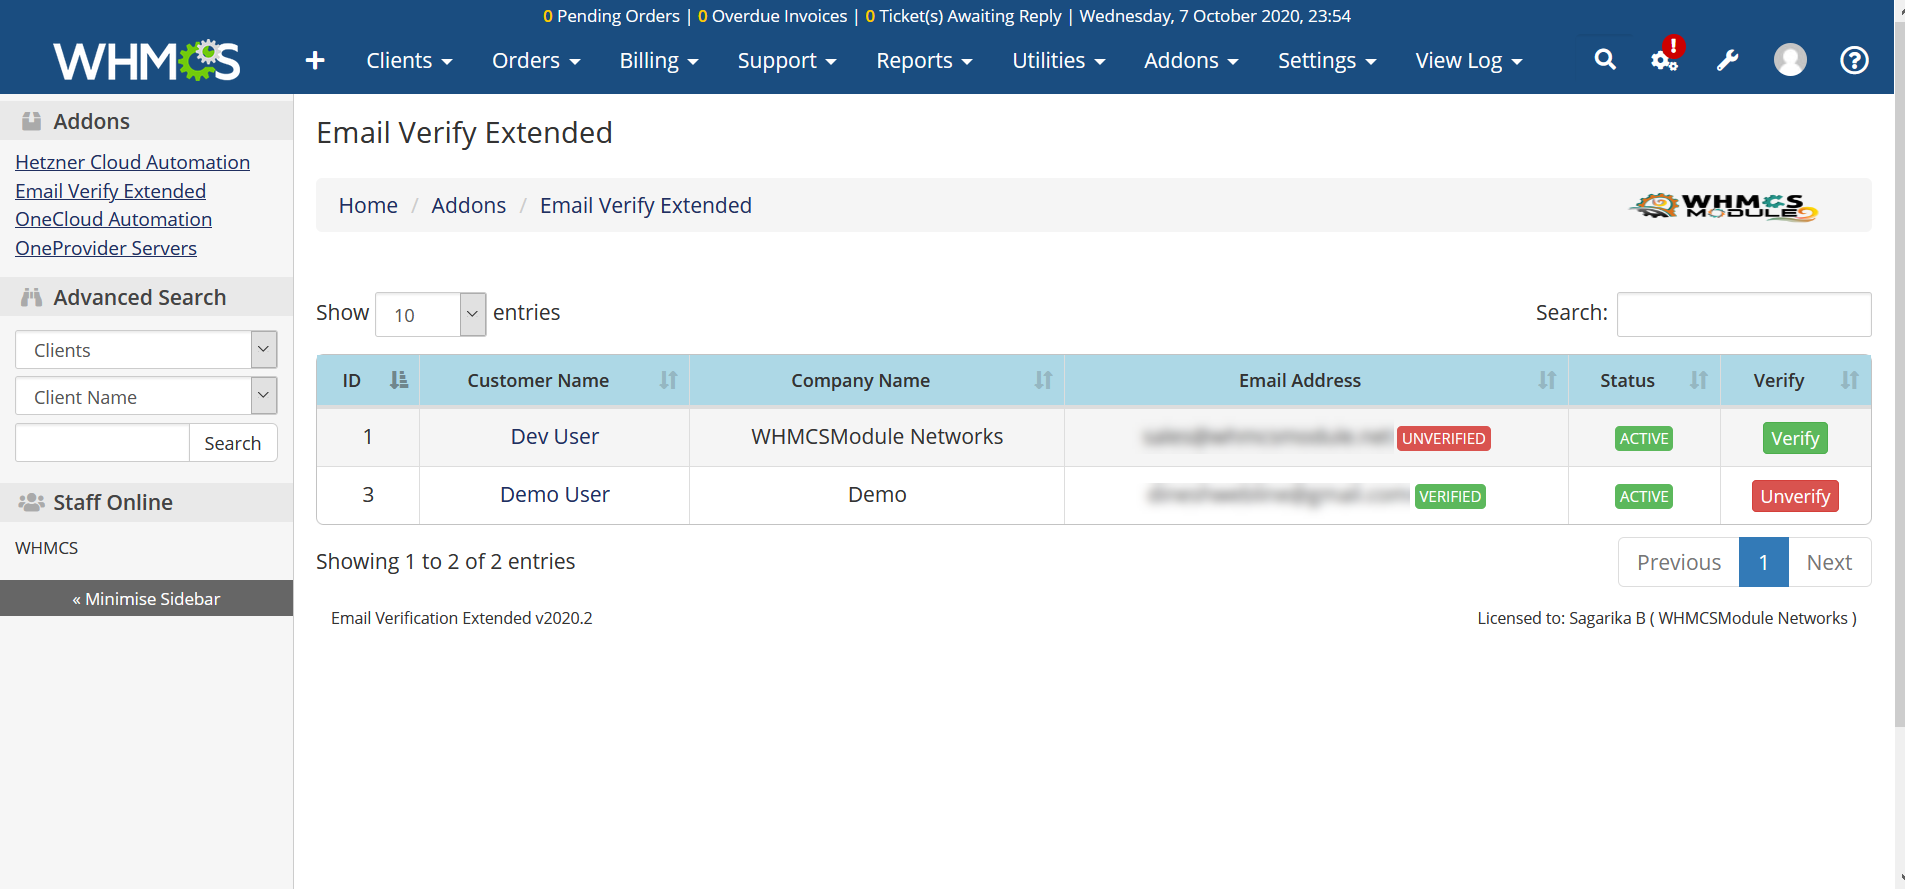 Email Verification Extended Module for WHMCS